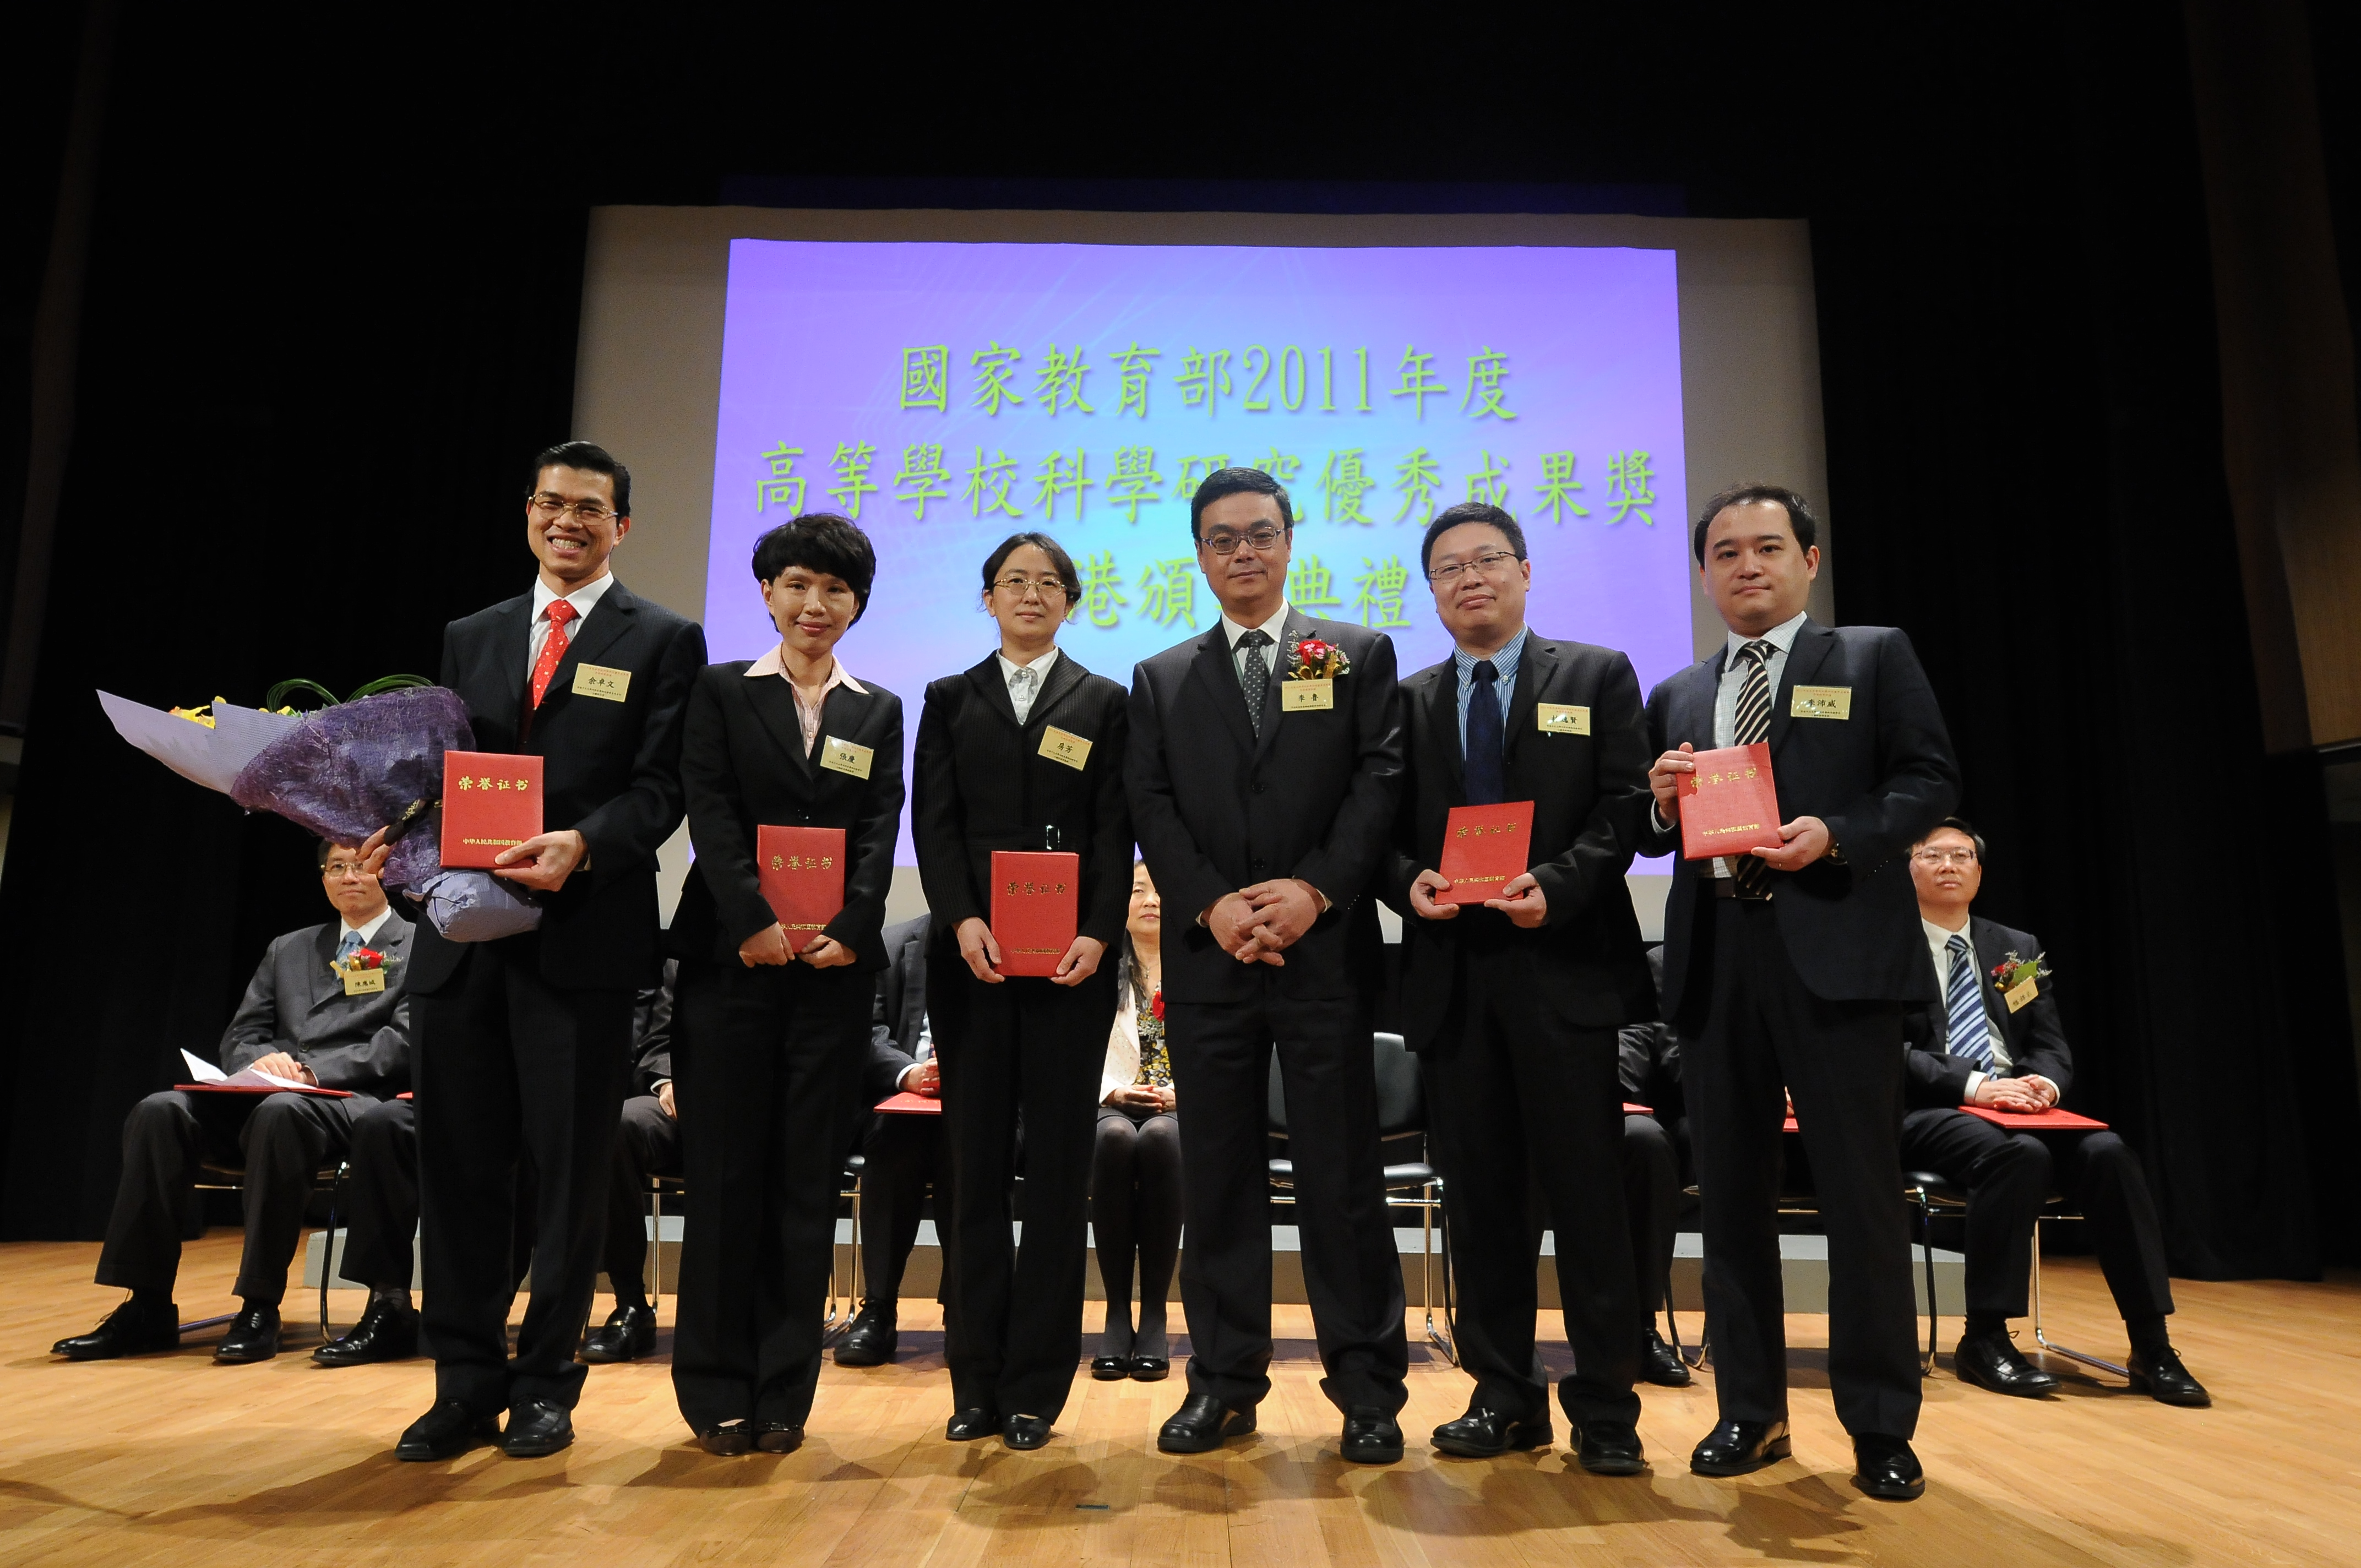 Prof. Yu Cheuk-man (1st left), Chairman, Department of Medicine and Therapeutics, and Head, Division of Cardiology; Dr. Zhang Qing (2nd left), Adjunct Associate Professor (honorary), Dr. Fang Fang (3rd left), Research Assistant Professor, Prof. Lam Yat-yin (2nd right), Associate Professor, Prof. Lee Pui-wai Alex (1st right), Assistant Professor, Division of Cardiology, Department of Medicine and Therapeutics, CUHK, receive their award certificates from Mr. Li Lu (3rd right), Deputy Director General of the Education, Science & Technology Department of the Liaison Office of the Central People's Government in HKSAR.